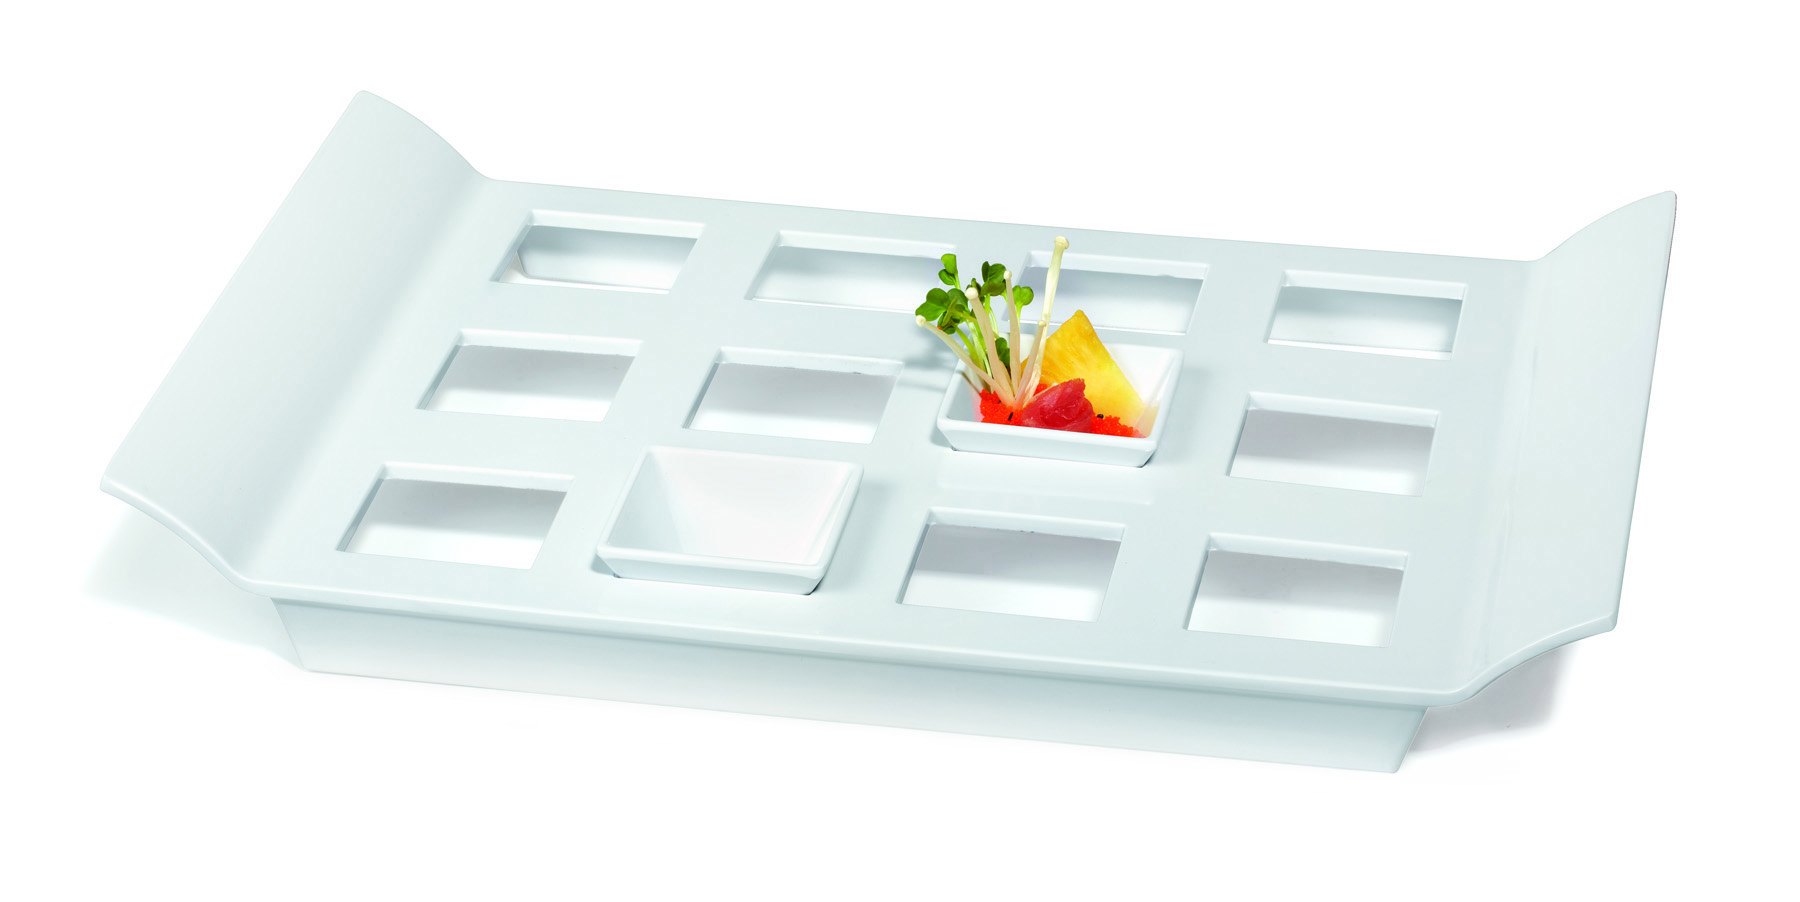 18 Quot X 13 Quot Tray With 12 Square Slots For Ml 257 G E T